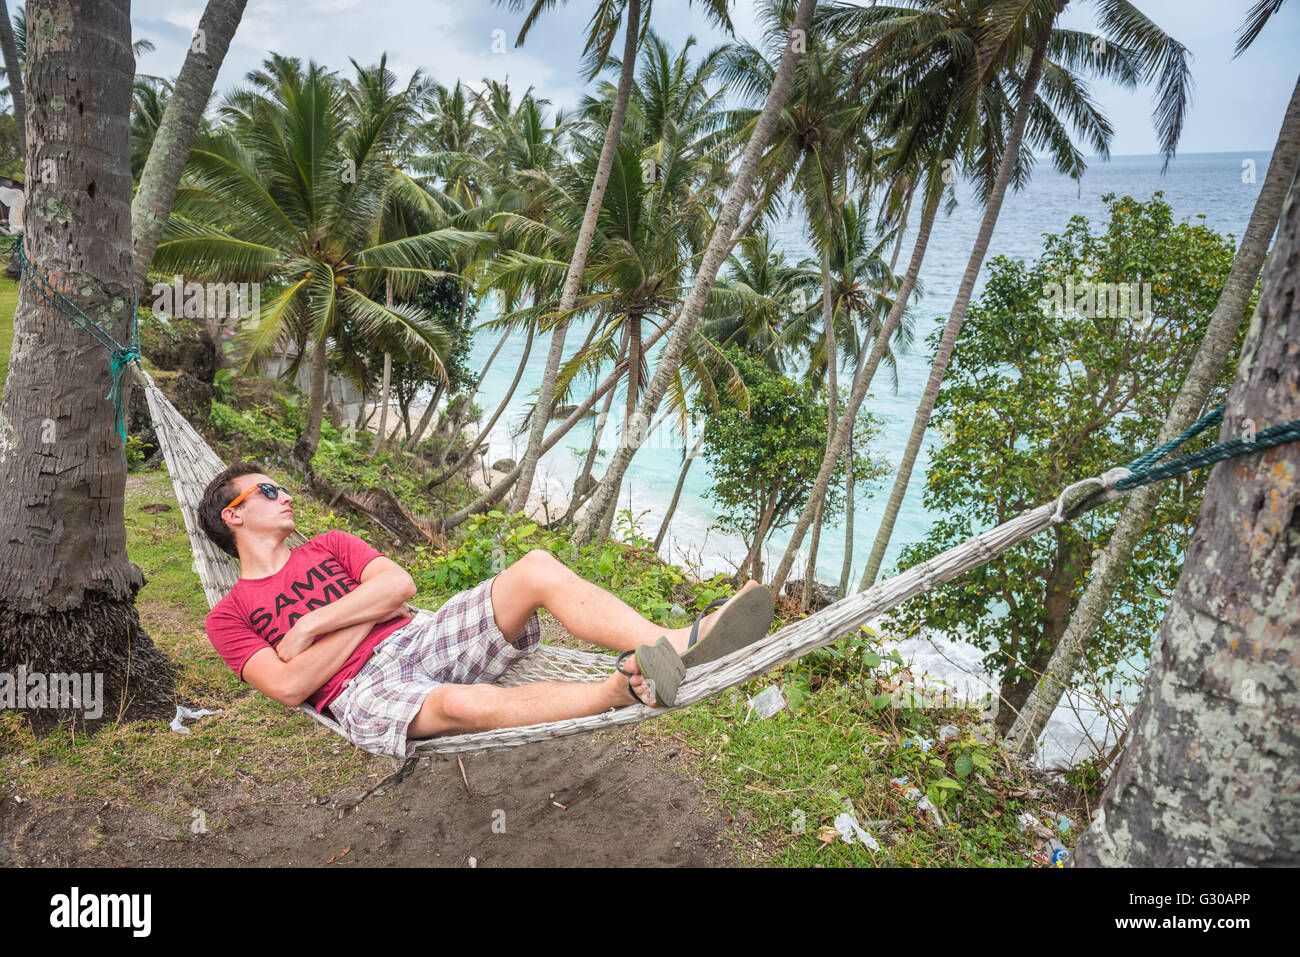 Tourist in a hammock at the beach, Pulau Weh Island, Aceh Province, Sumatra, Indonesia, Southeast Asia, Asia - Stock Image